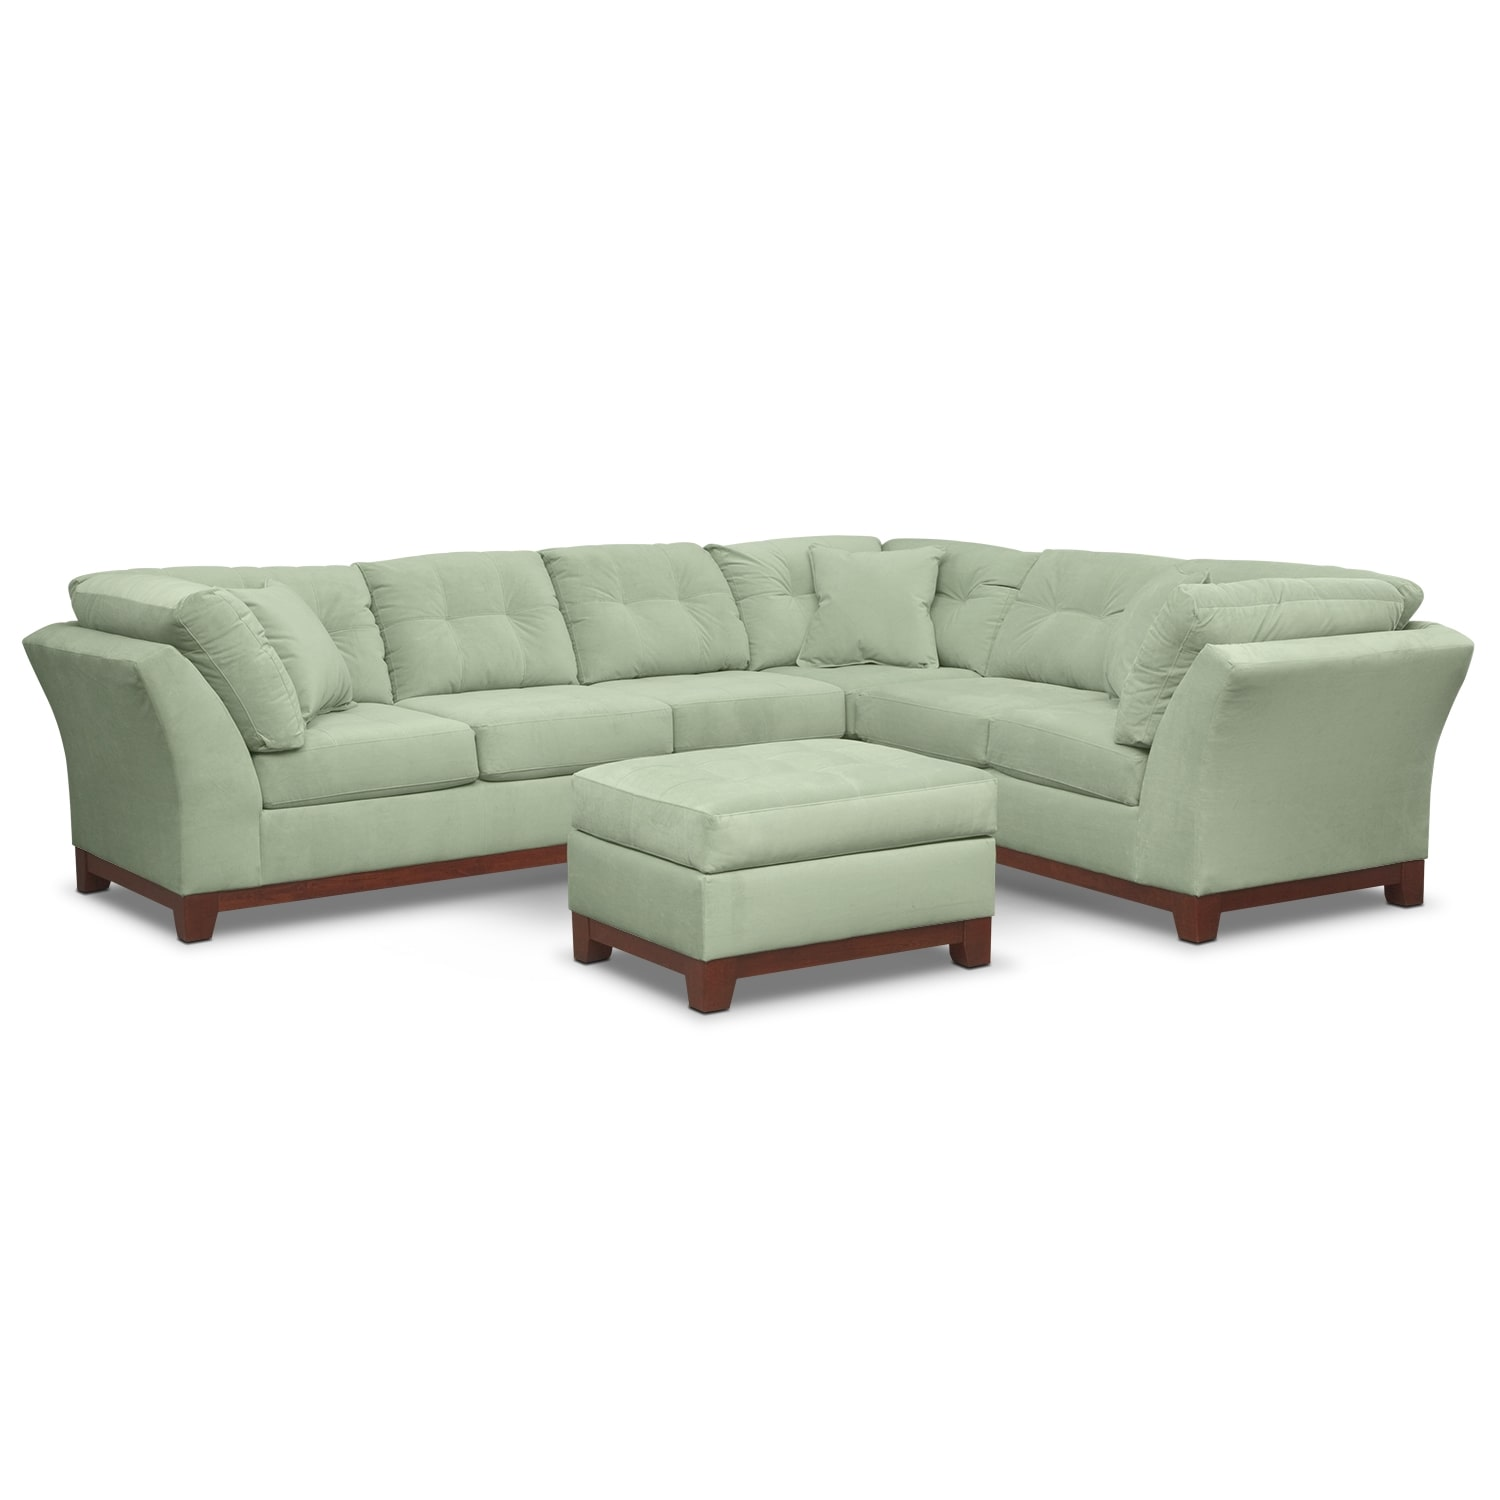 Living Room Furniture - Solace Spa II 3 Pc. Sectional (Reverse) and Ottoman